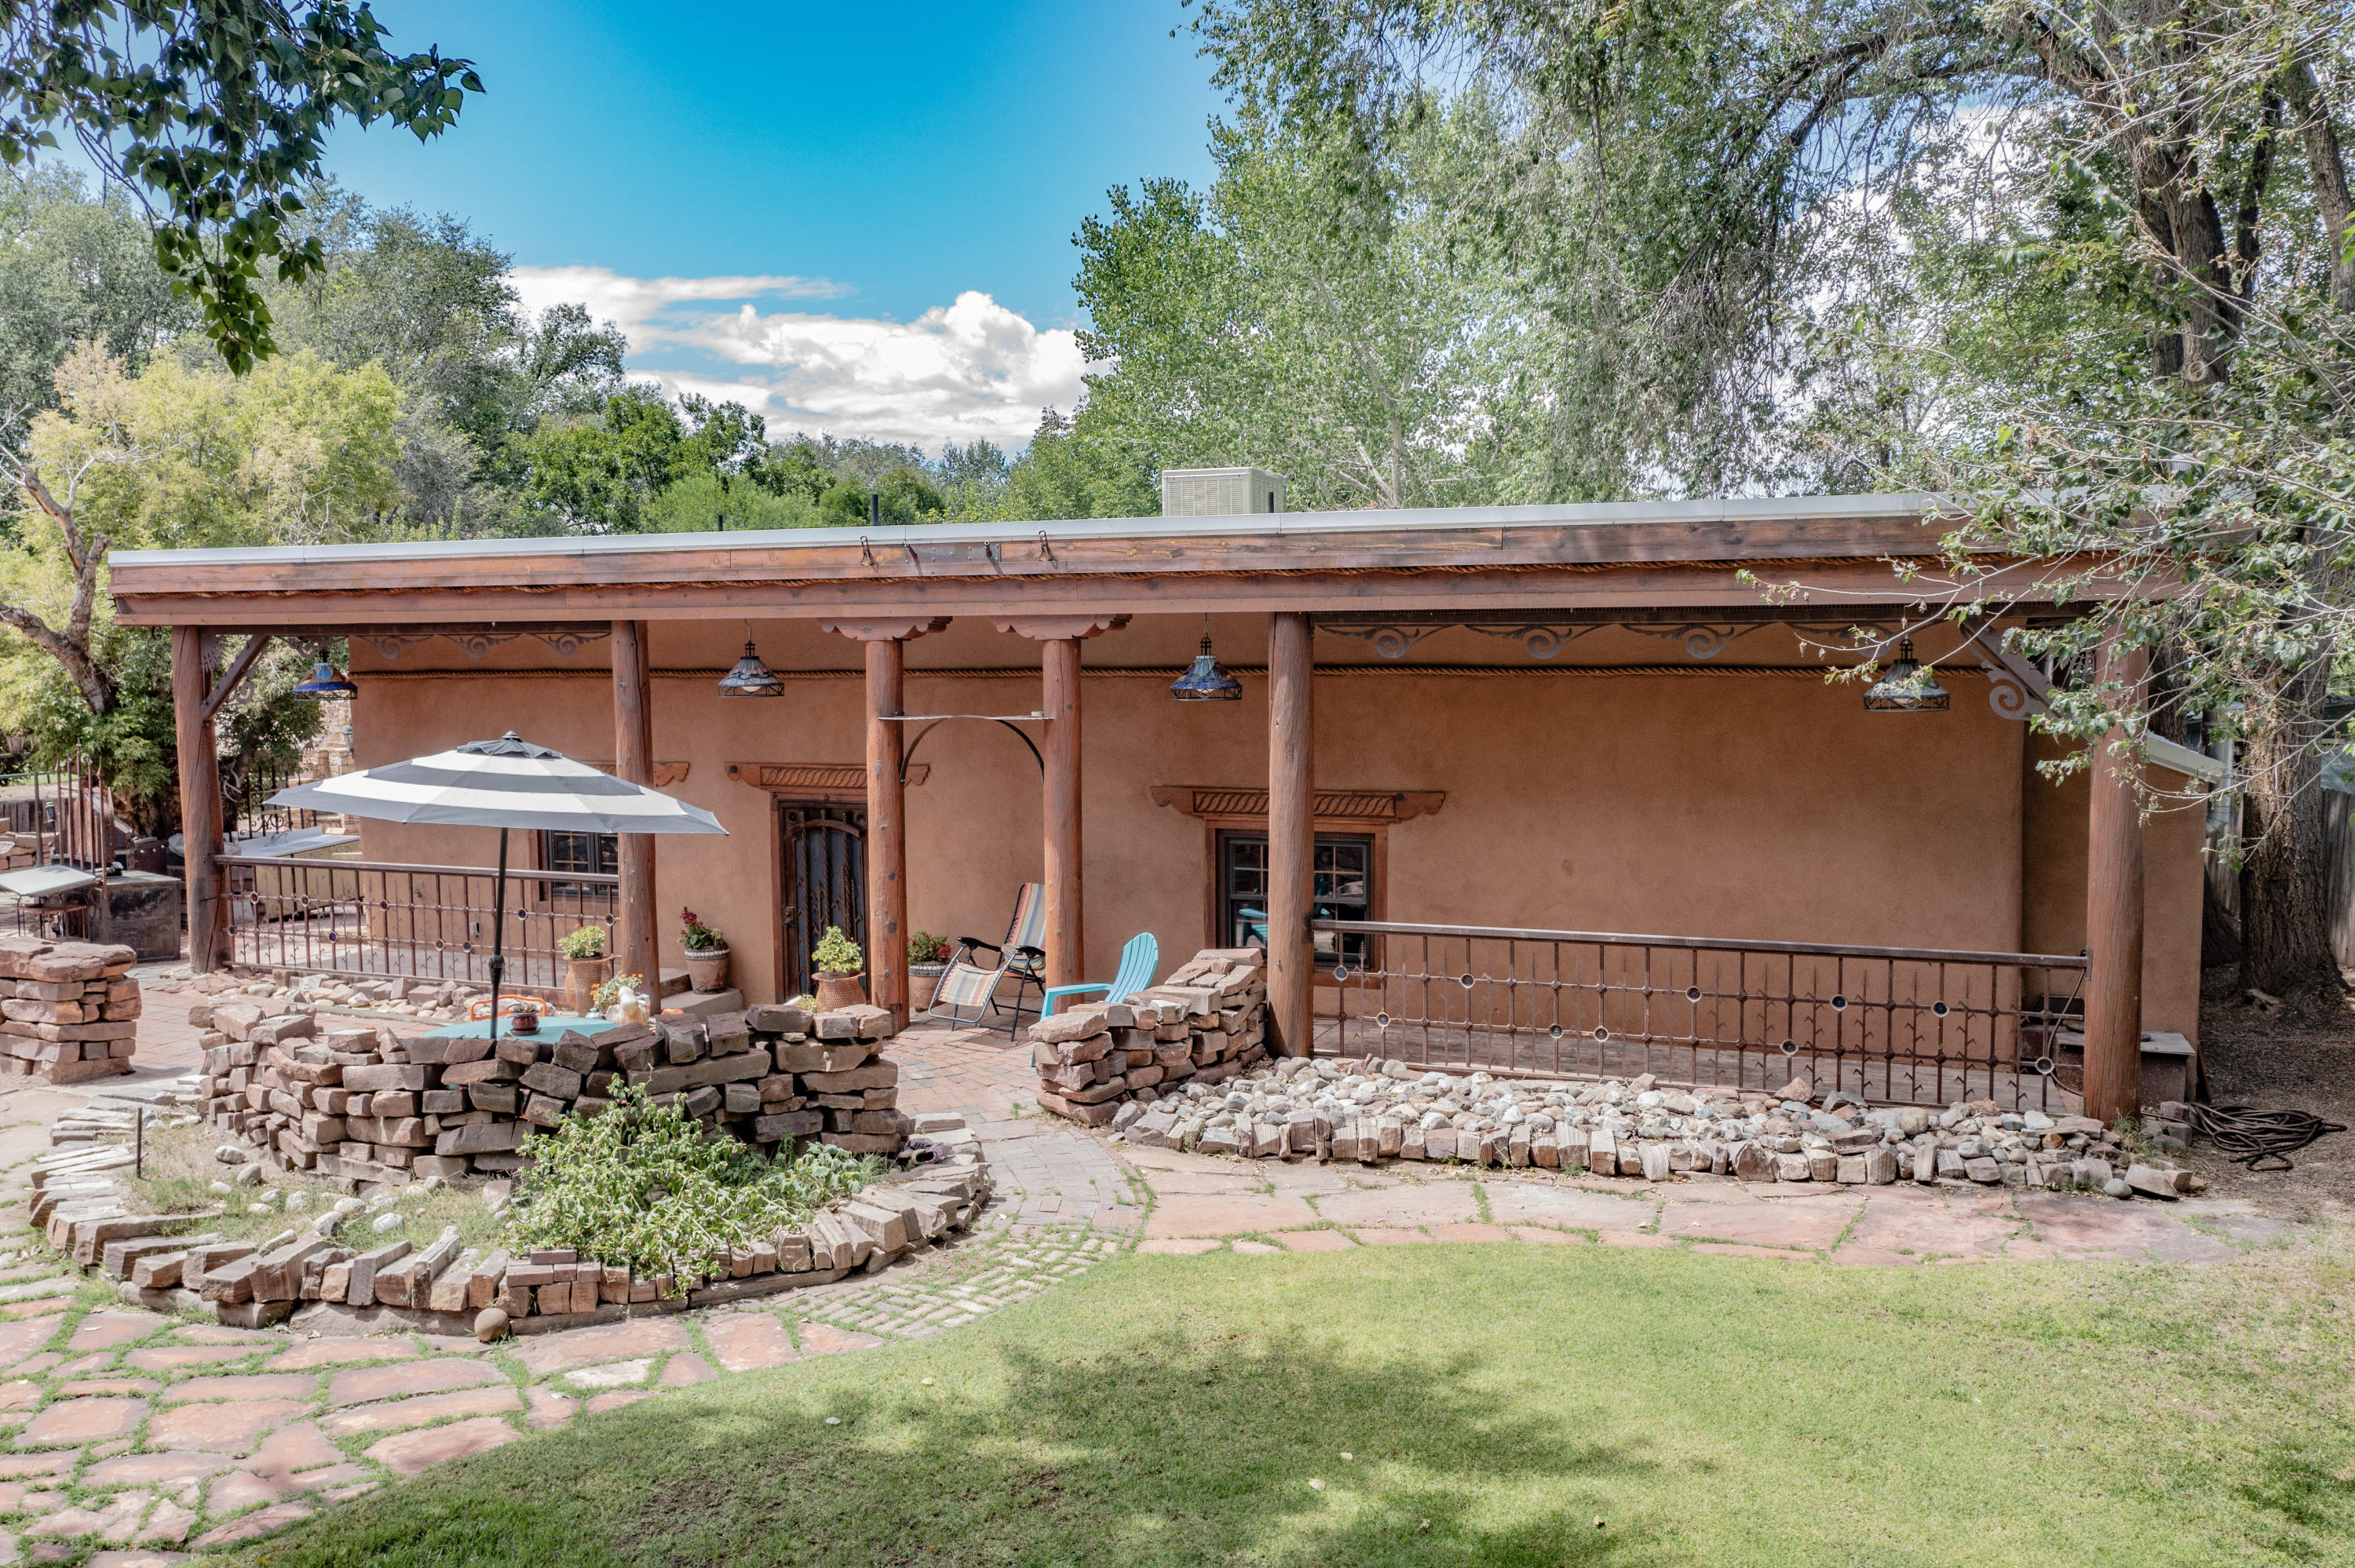 This unique north valley property offers it's own private paradise on 1.35 acres.  The main house has 3 bedrooms, 2 baths, radiant heating, beautiful polished concrete floors and venetian walls, all adobe.  The guest house, built around 1936 is also made from adobe, has 3 bedrooms, 1 bath, original wood floors, quaint little kitchen with Spanish tiles.  The 3rd building is only 6 years old and has a beauty salon.  All 3 buildings over look a beautiful pond, waterfall and grass area, all provided with water from an irrigation well.  All properties are on public water and sewer.  Many fruit trees, large metal gate for privacy and plenty of parking.  Workout room with sauna.  Several storage buildings. See Melanie for exclusions.